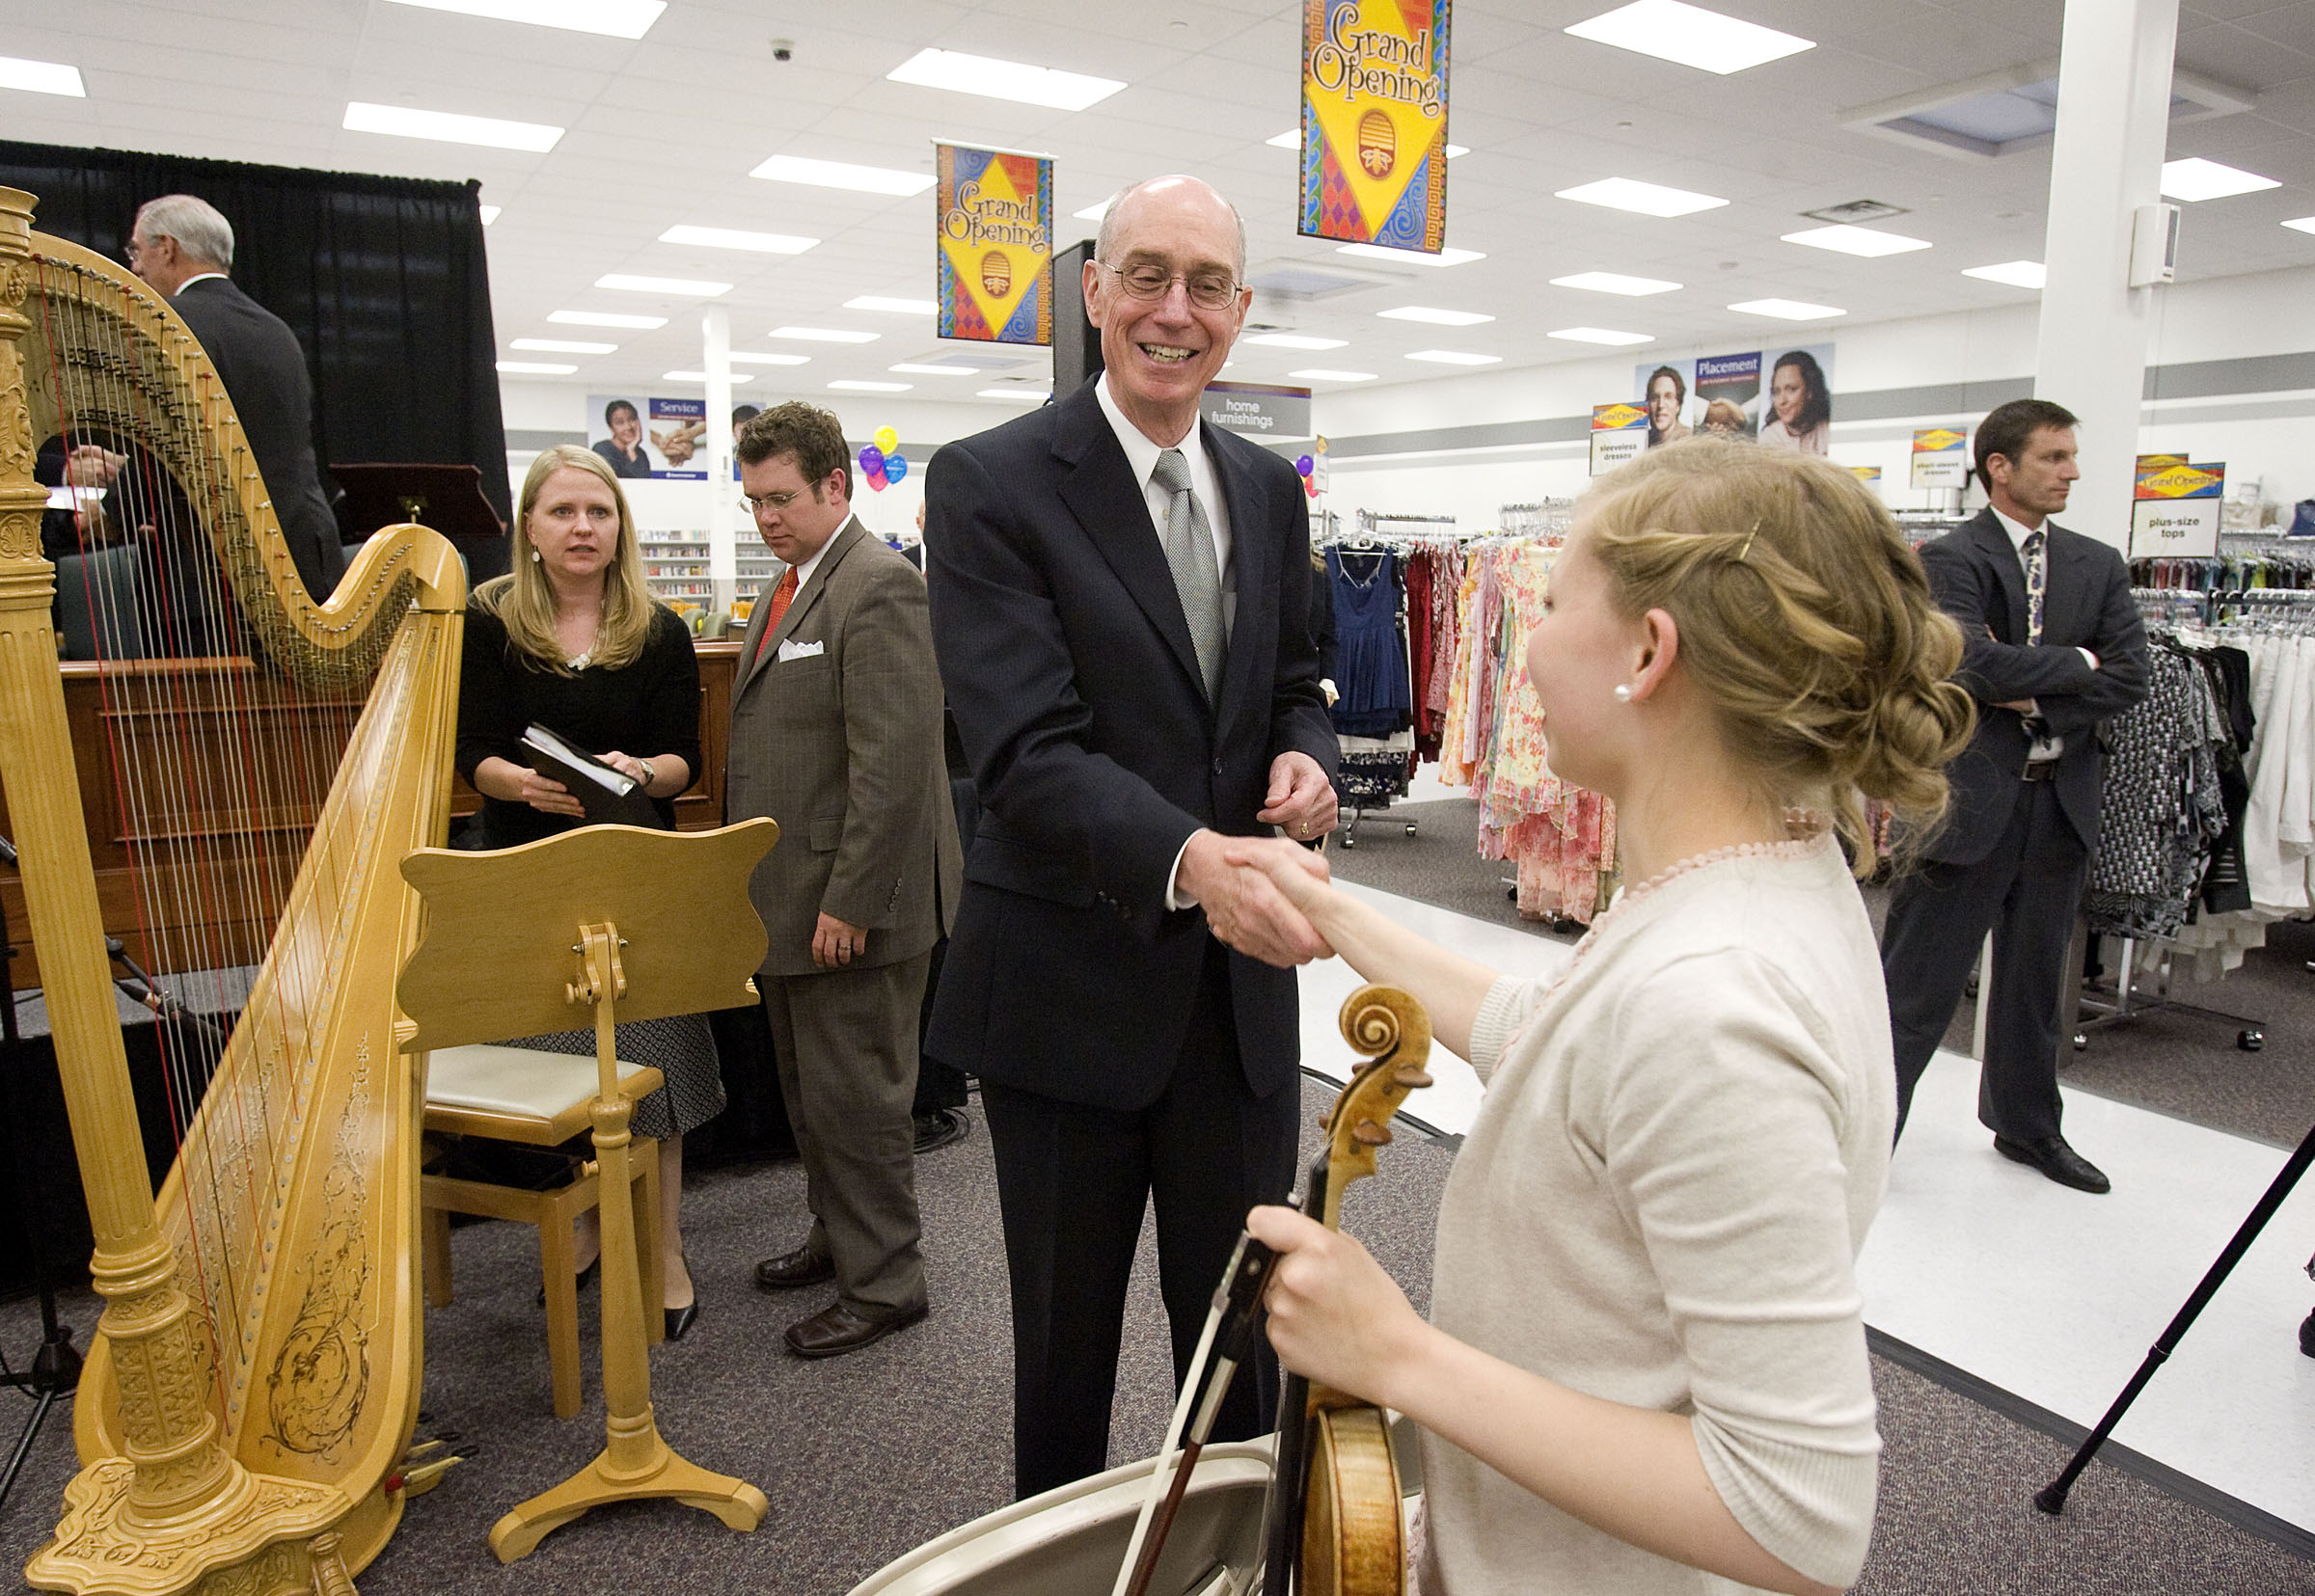 President Henry B. Eyring of the First Presidency of the Church of Jesus Christ of Latter-day Saints thanks violinist Emily Nelson, who performed during the program, after the Sugarhouse Welfare Facility Dedication services in Salt Lake City on Wednesday, June 8, 2011.